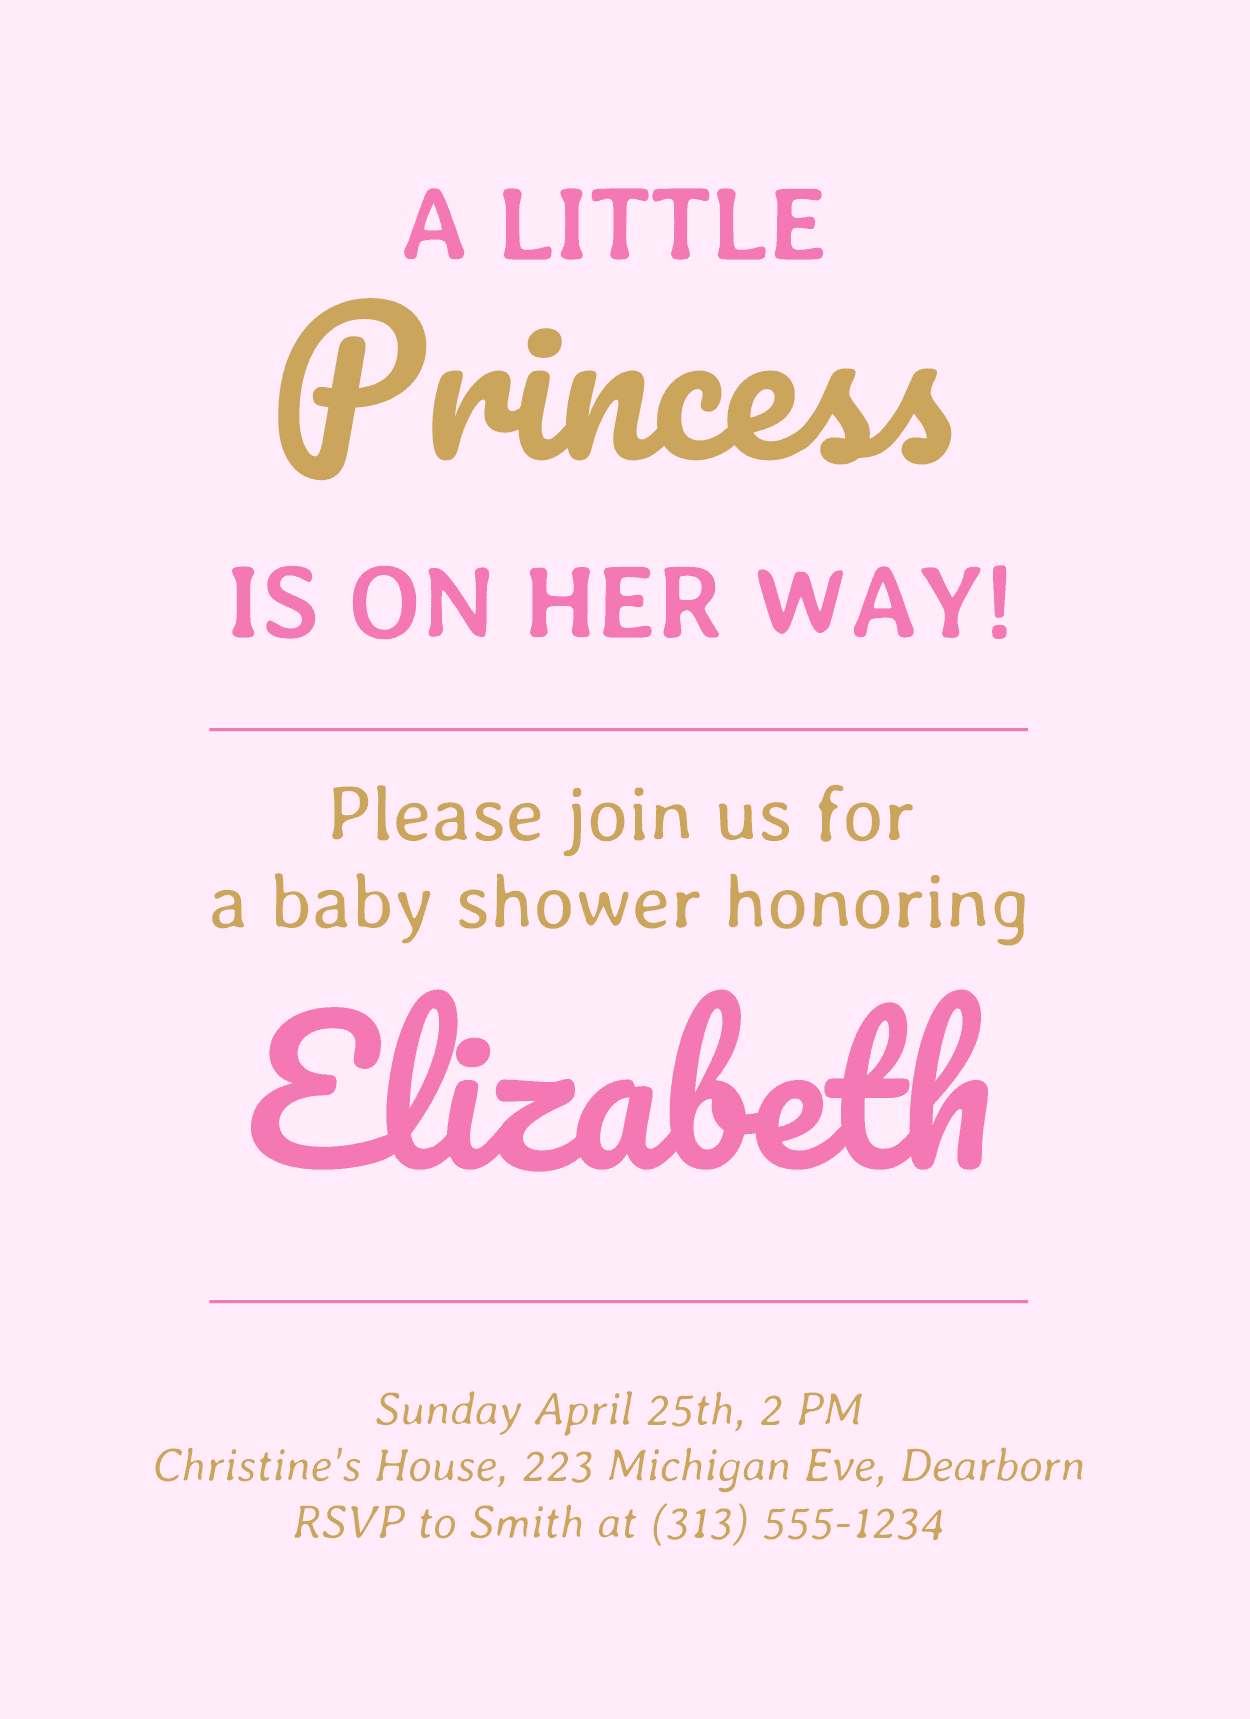 Pink baby shower invitation template venngage pink baby shower invitation filmwisefo